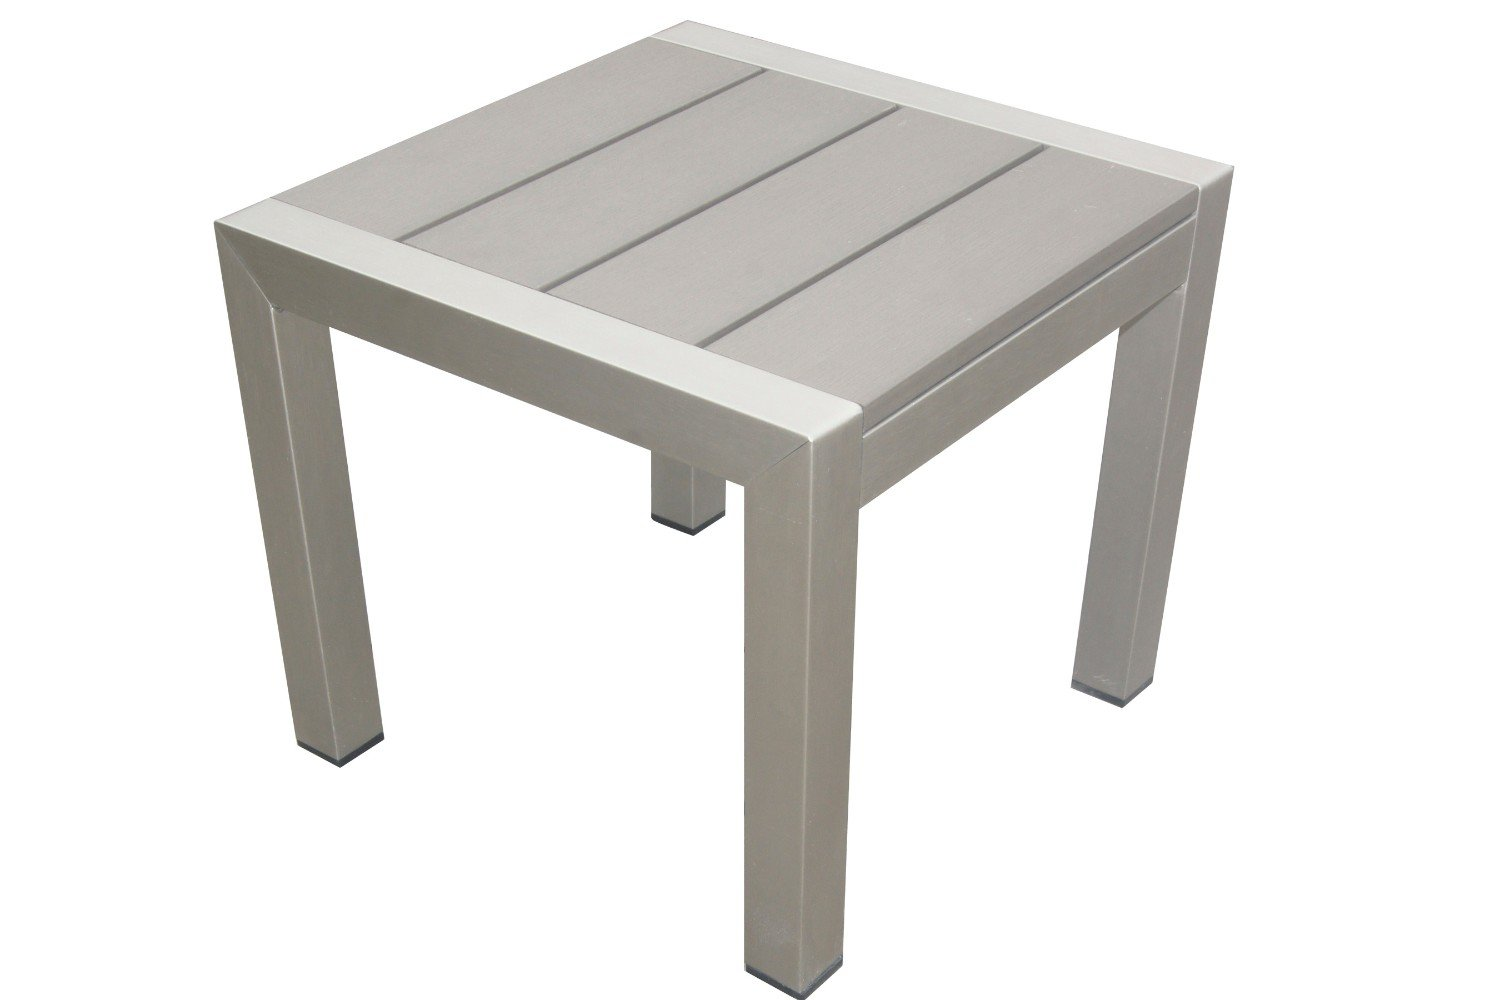 orren ellis lawler highly functional easy movable outdoor aluminum side table entryway with shelves grey linen tablecloth chess round antique tall cabinet glass doors coffee